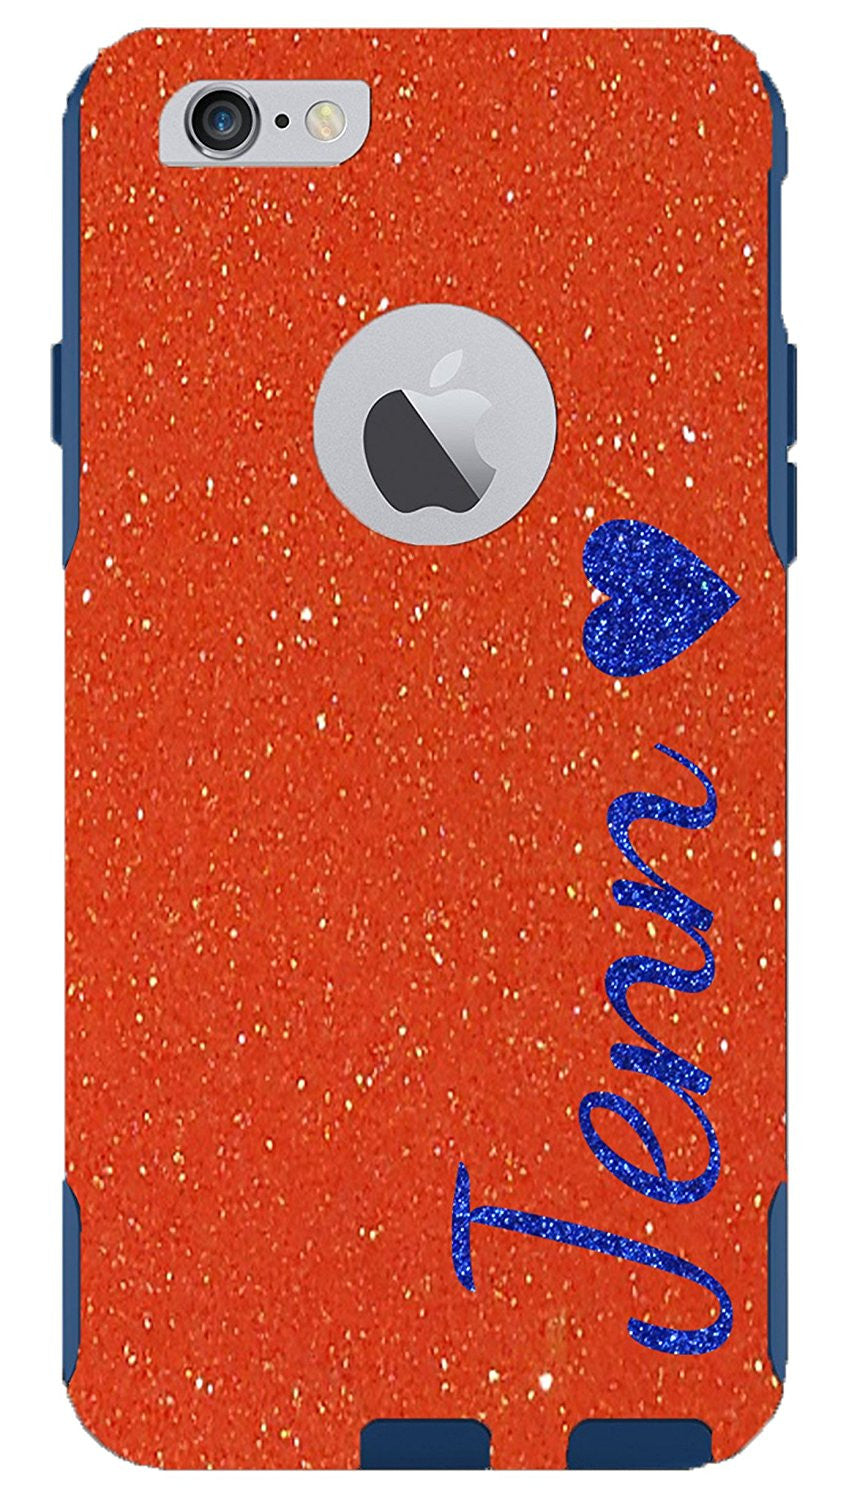 free shipping 948b1 cdec0 iPhone 6 6s Case - OtterBox Commuter Series Custom Glitter Case for iPhone  6s, Retail Packaging - Personalized Marine Name Neon Orange/Blue (4.7 inch)